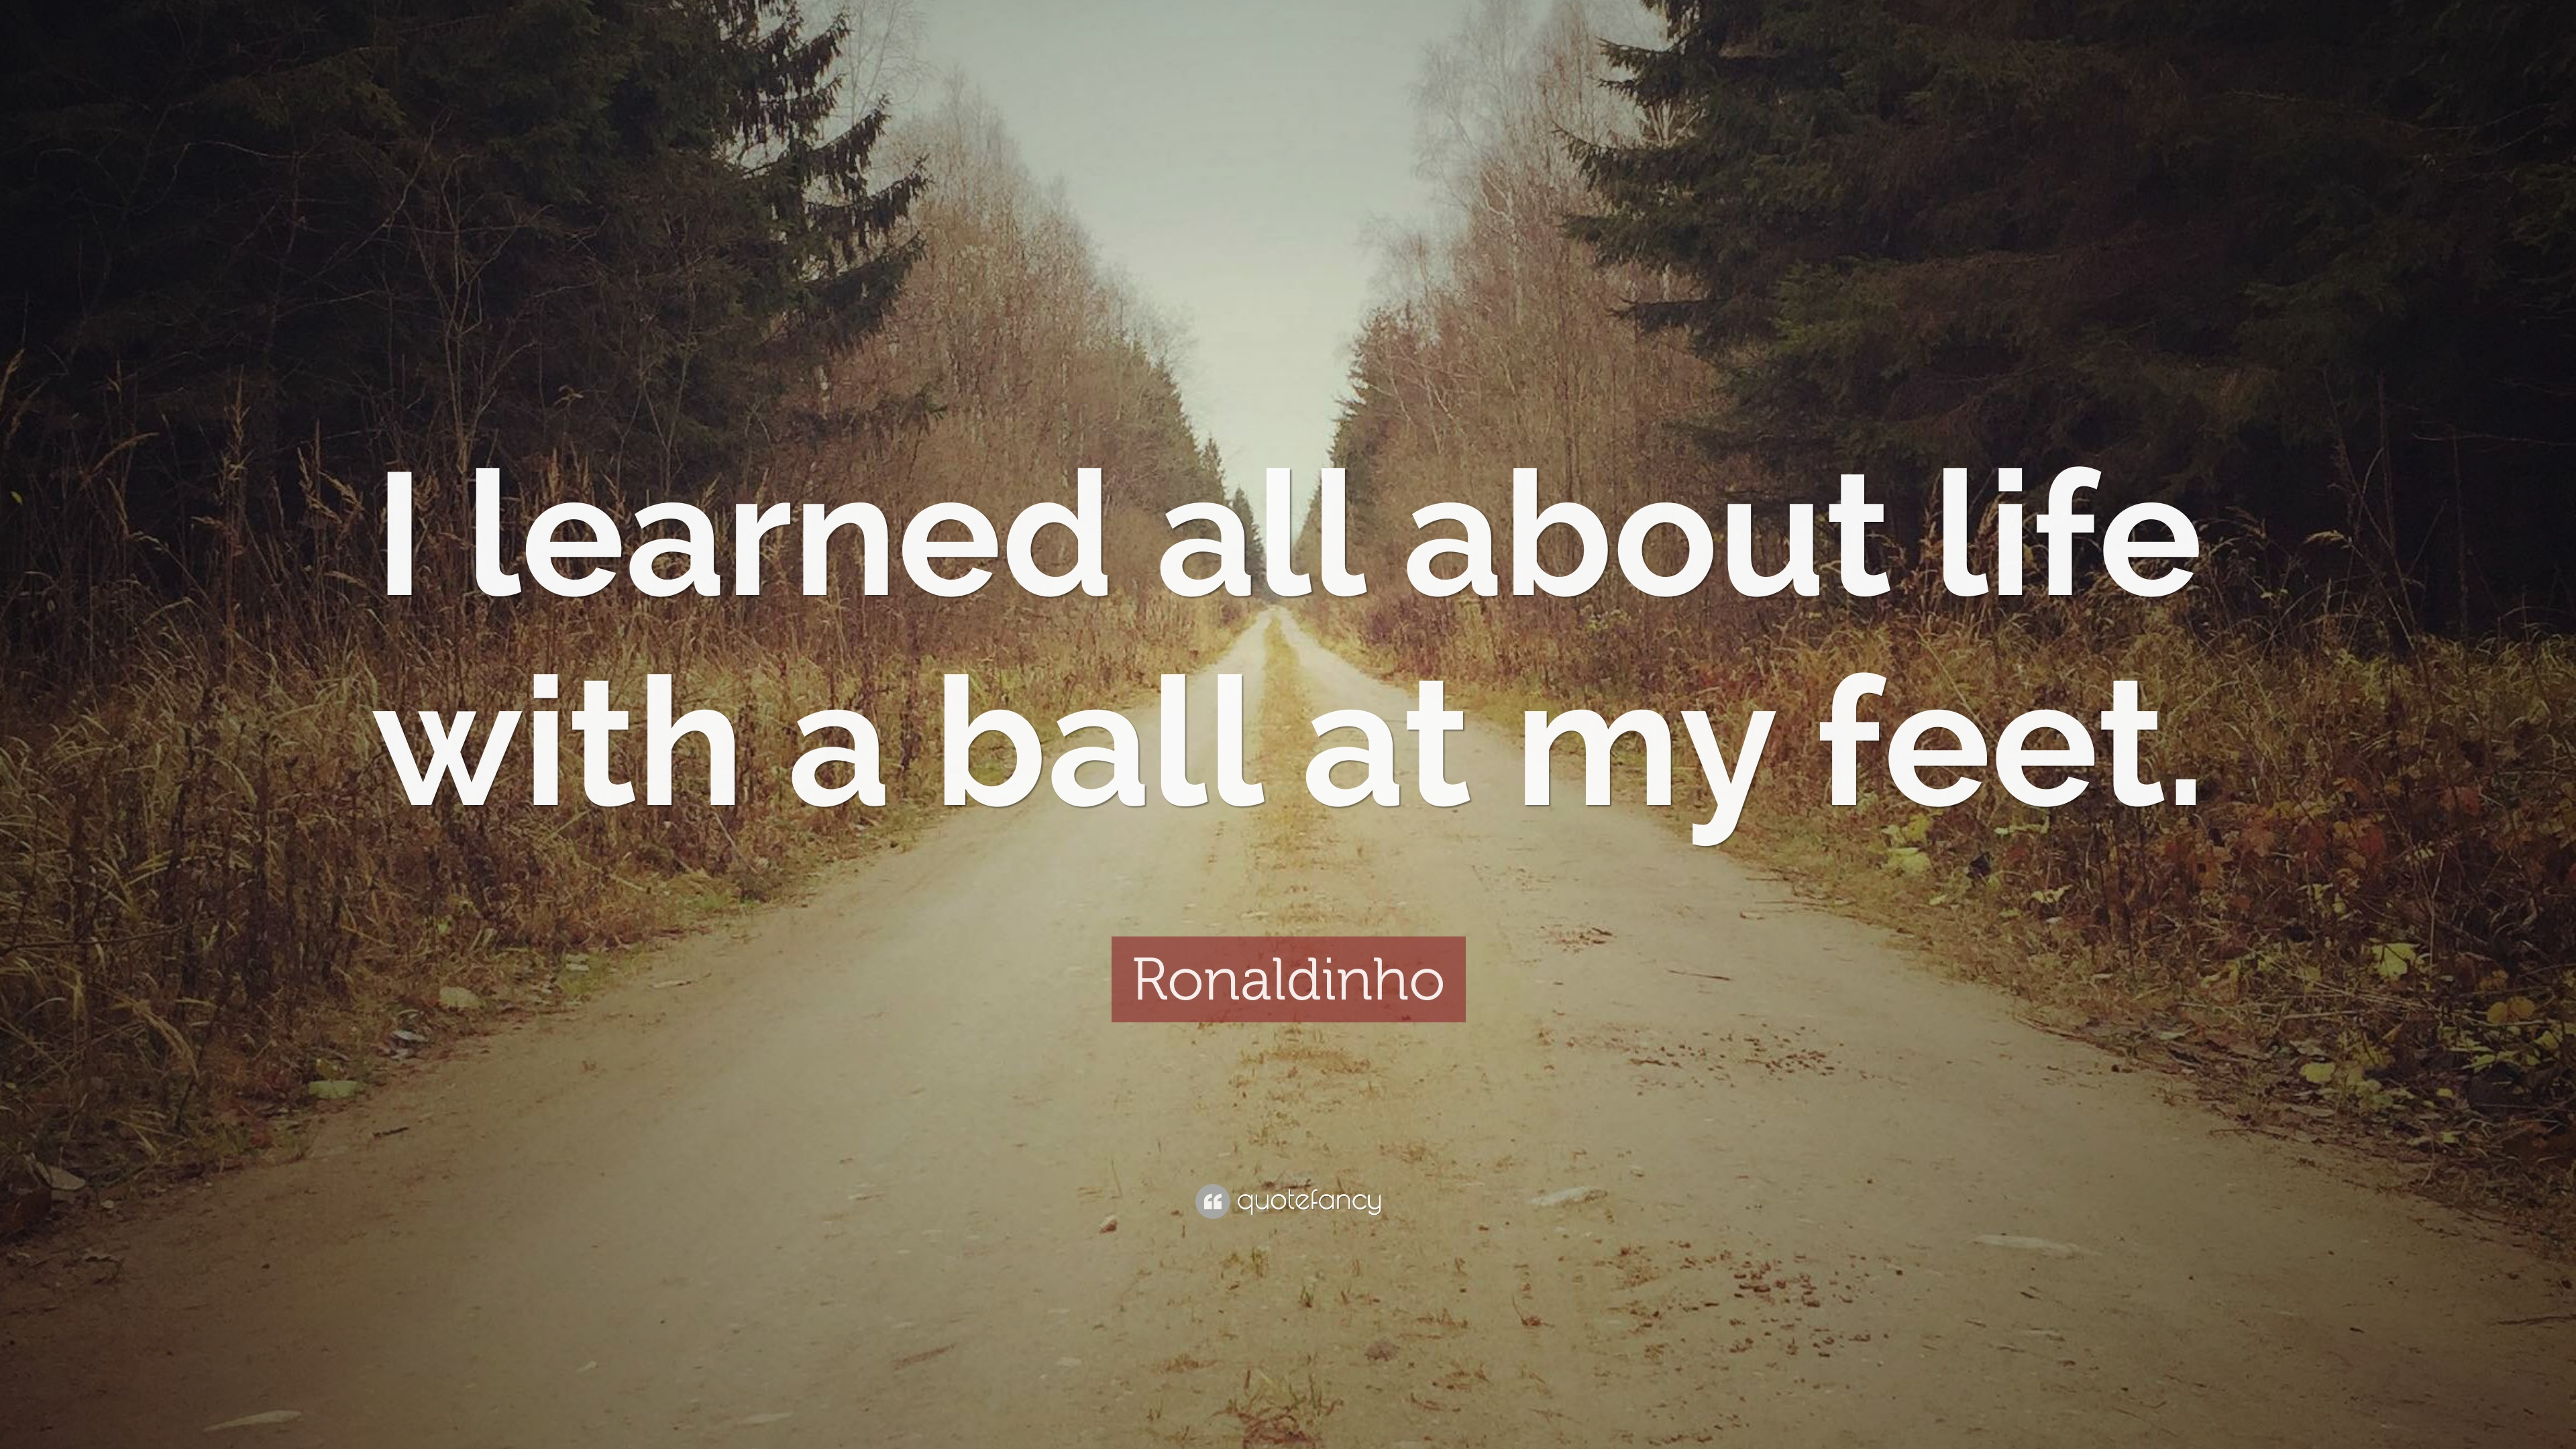 About Football Quotes Facebook thumbnail